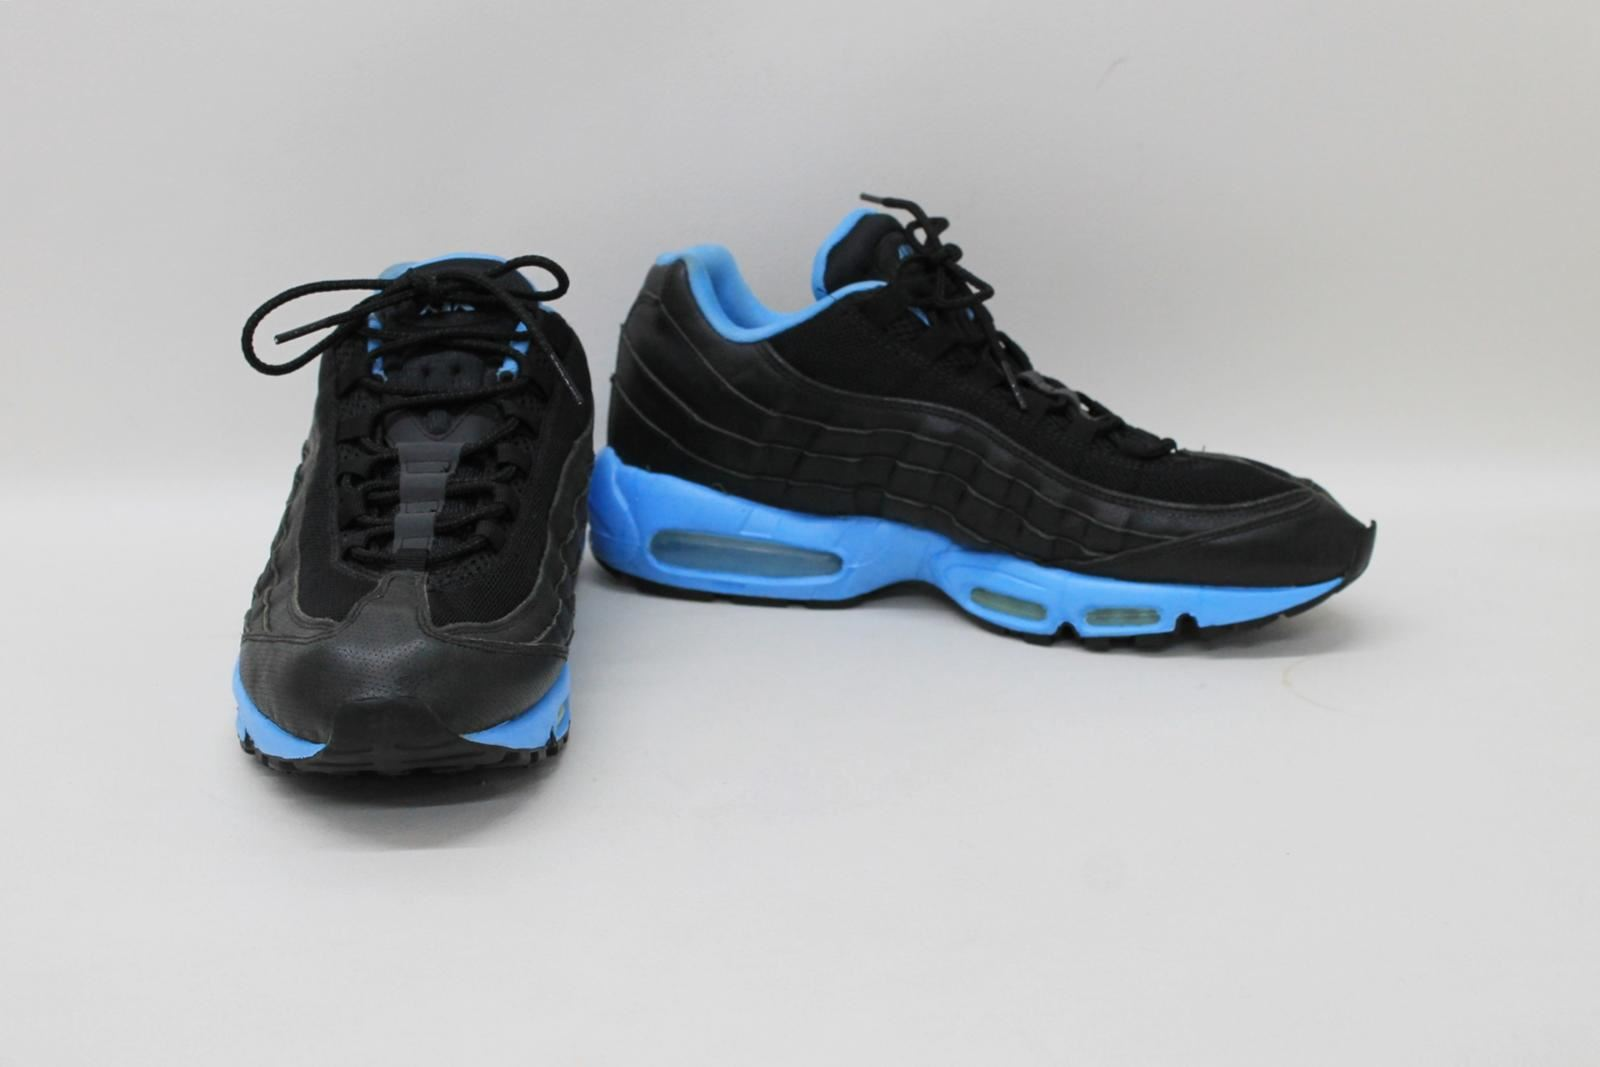 ec458994ee NIKE Air Max 95 Men's Black Blue Lace Up Trainers Shoes Size UK12 ...